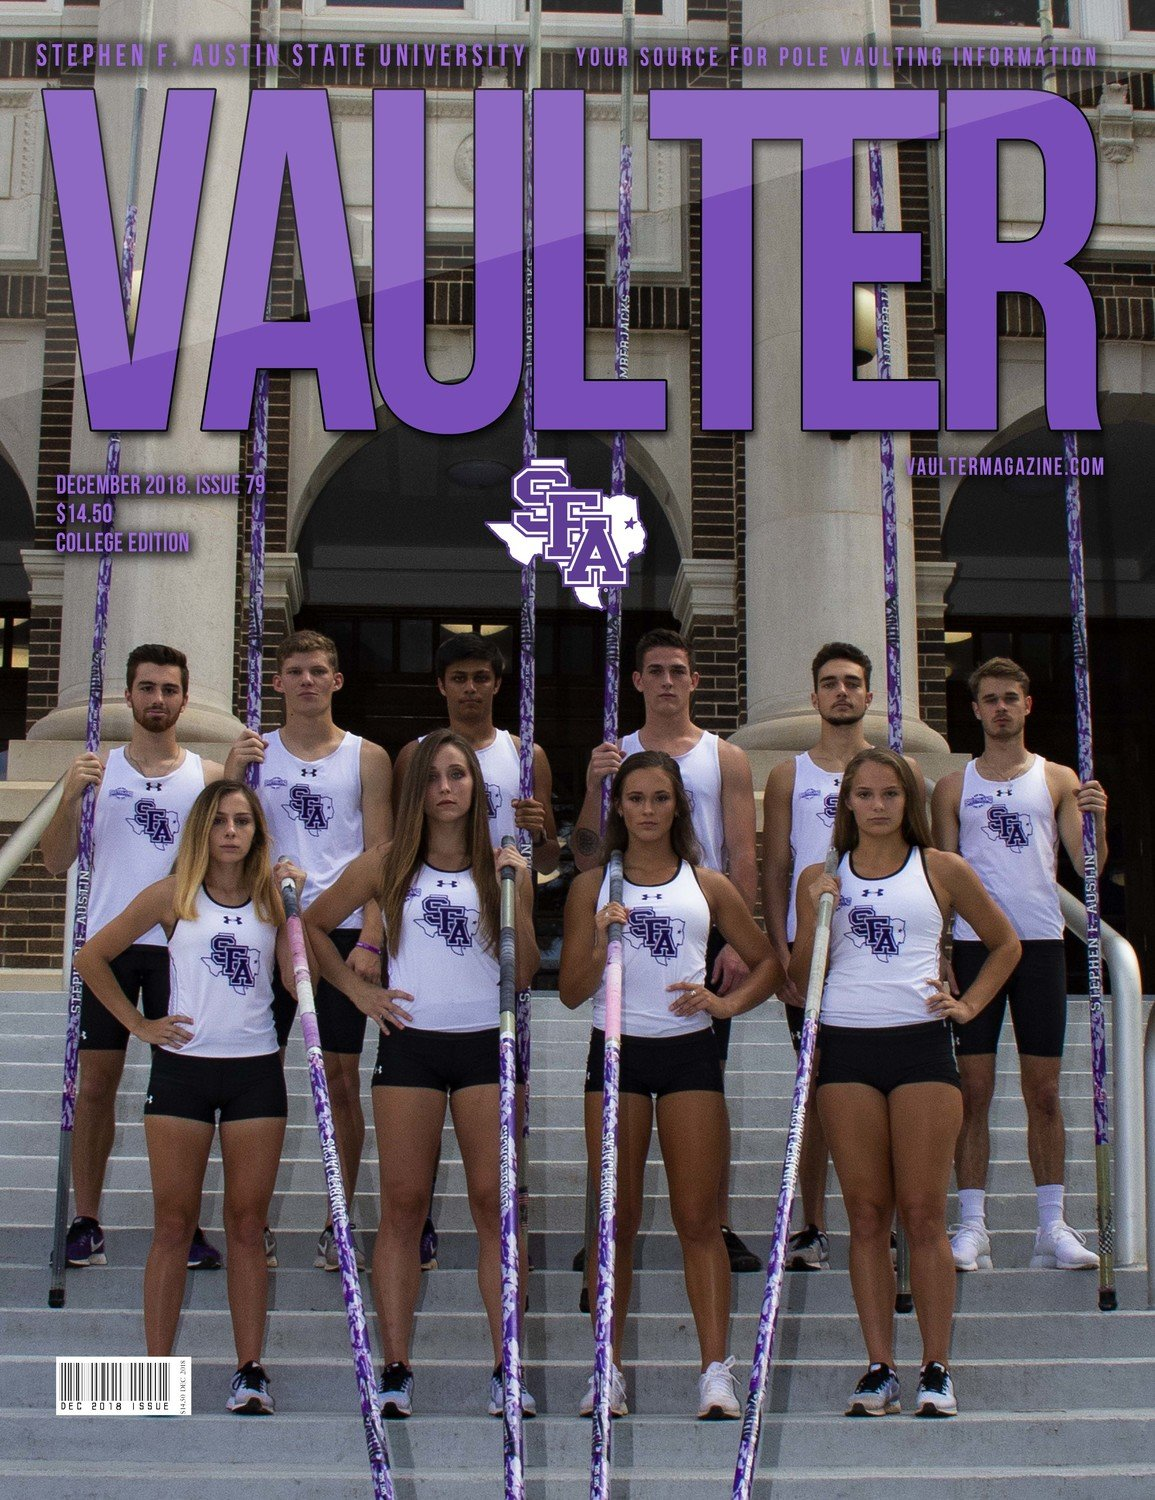 December 2018 Stephen F. Austin University Issue of Vaulter Magazine Cover  - Digital Download